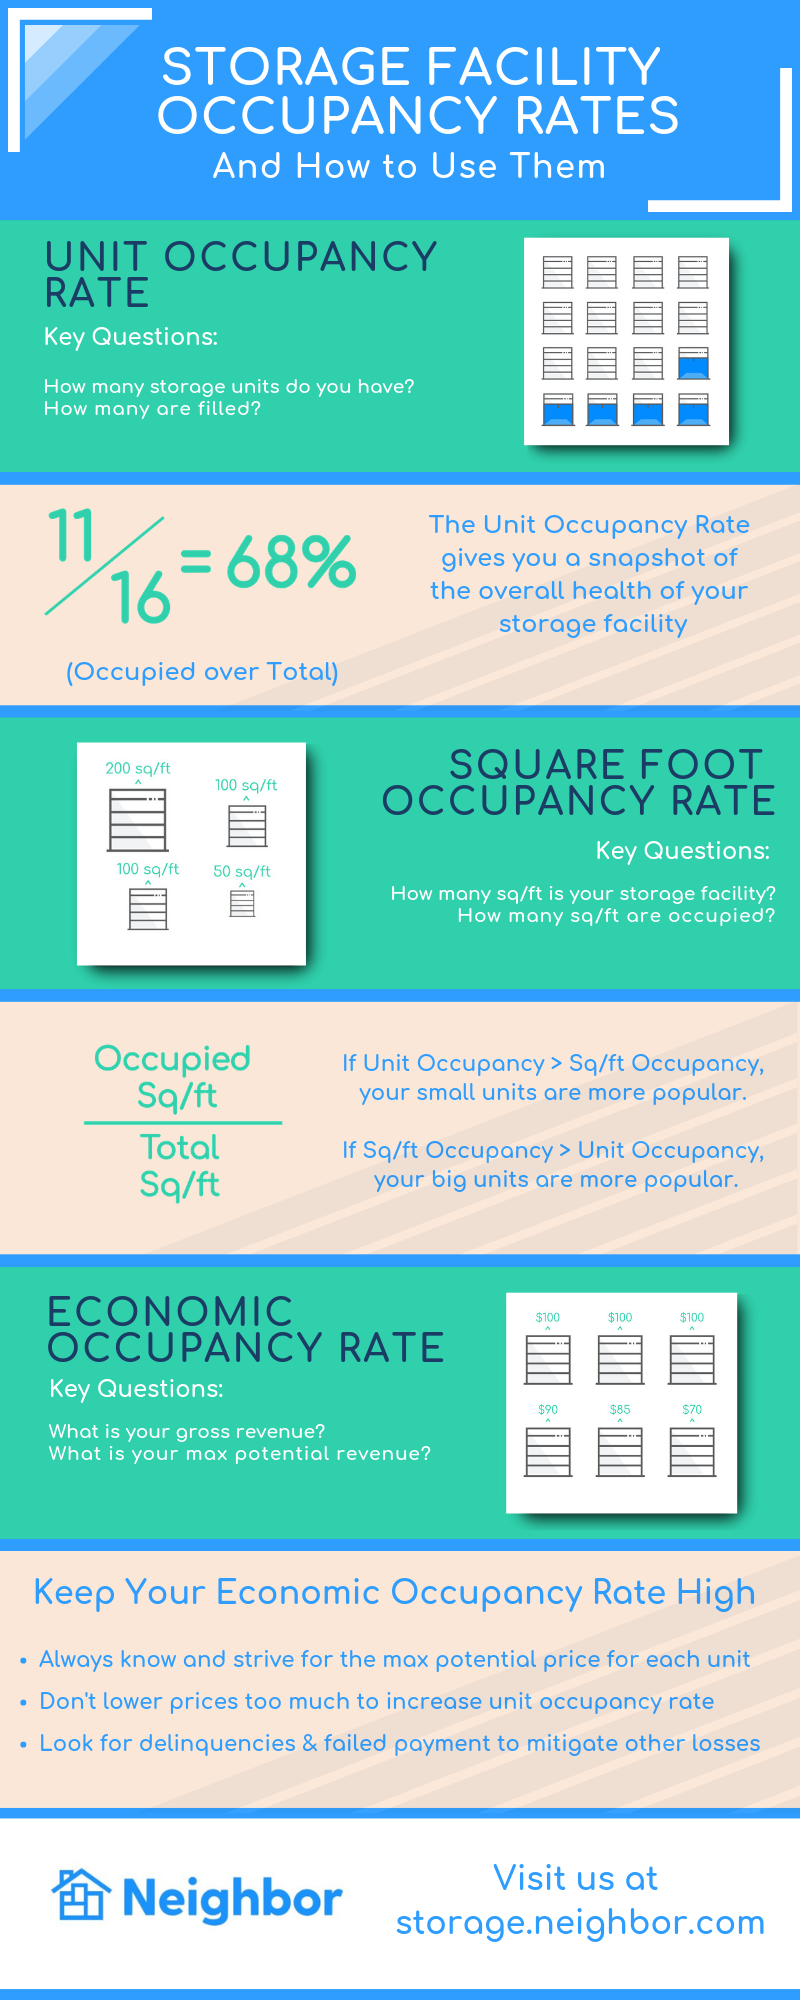 Storage Facility Occupancy Rates